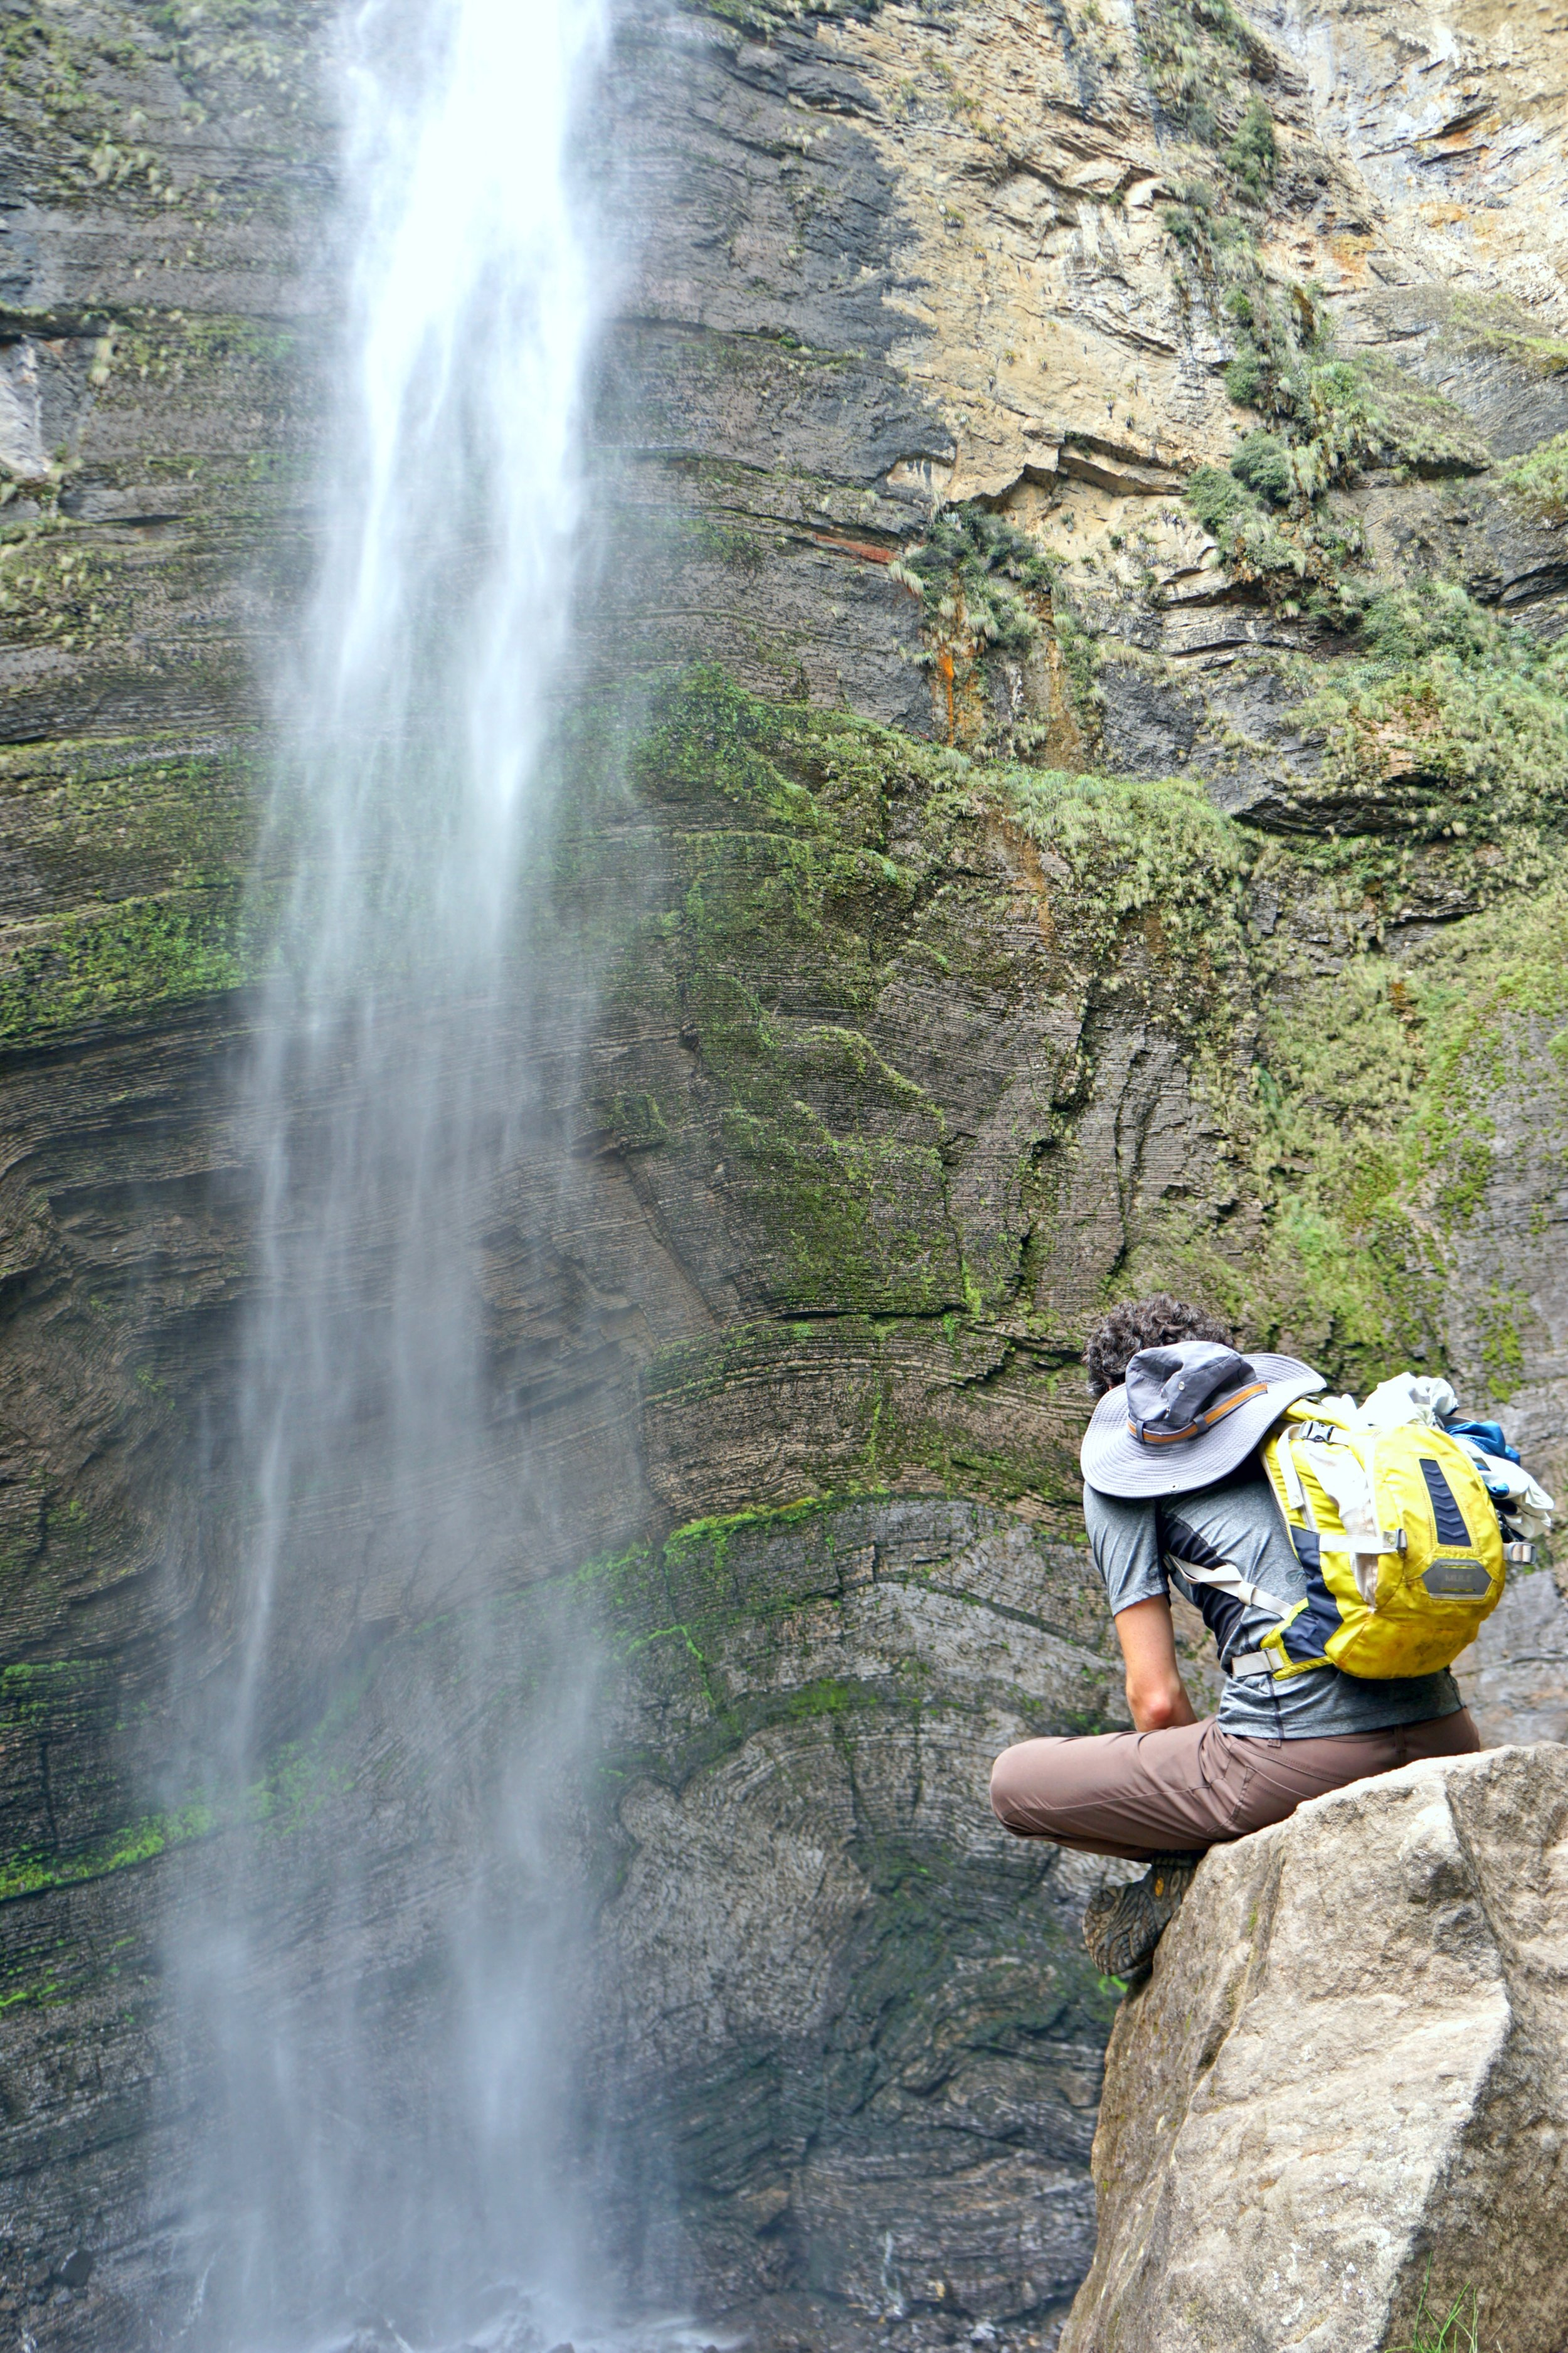 Taking in the breeze from Gotca Falls in Chachapoyas, Peru